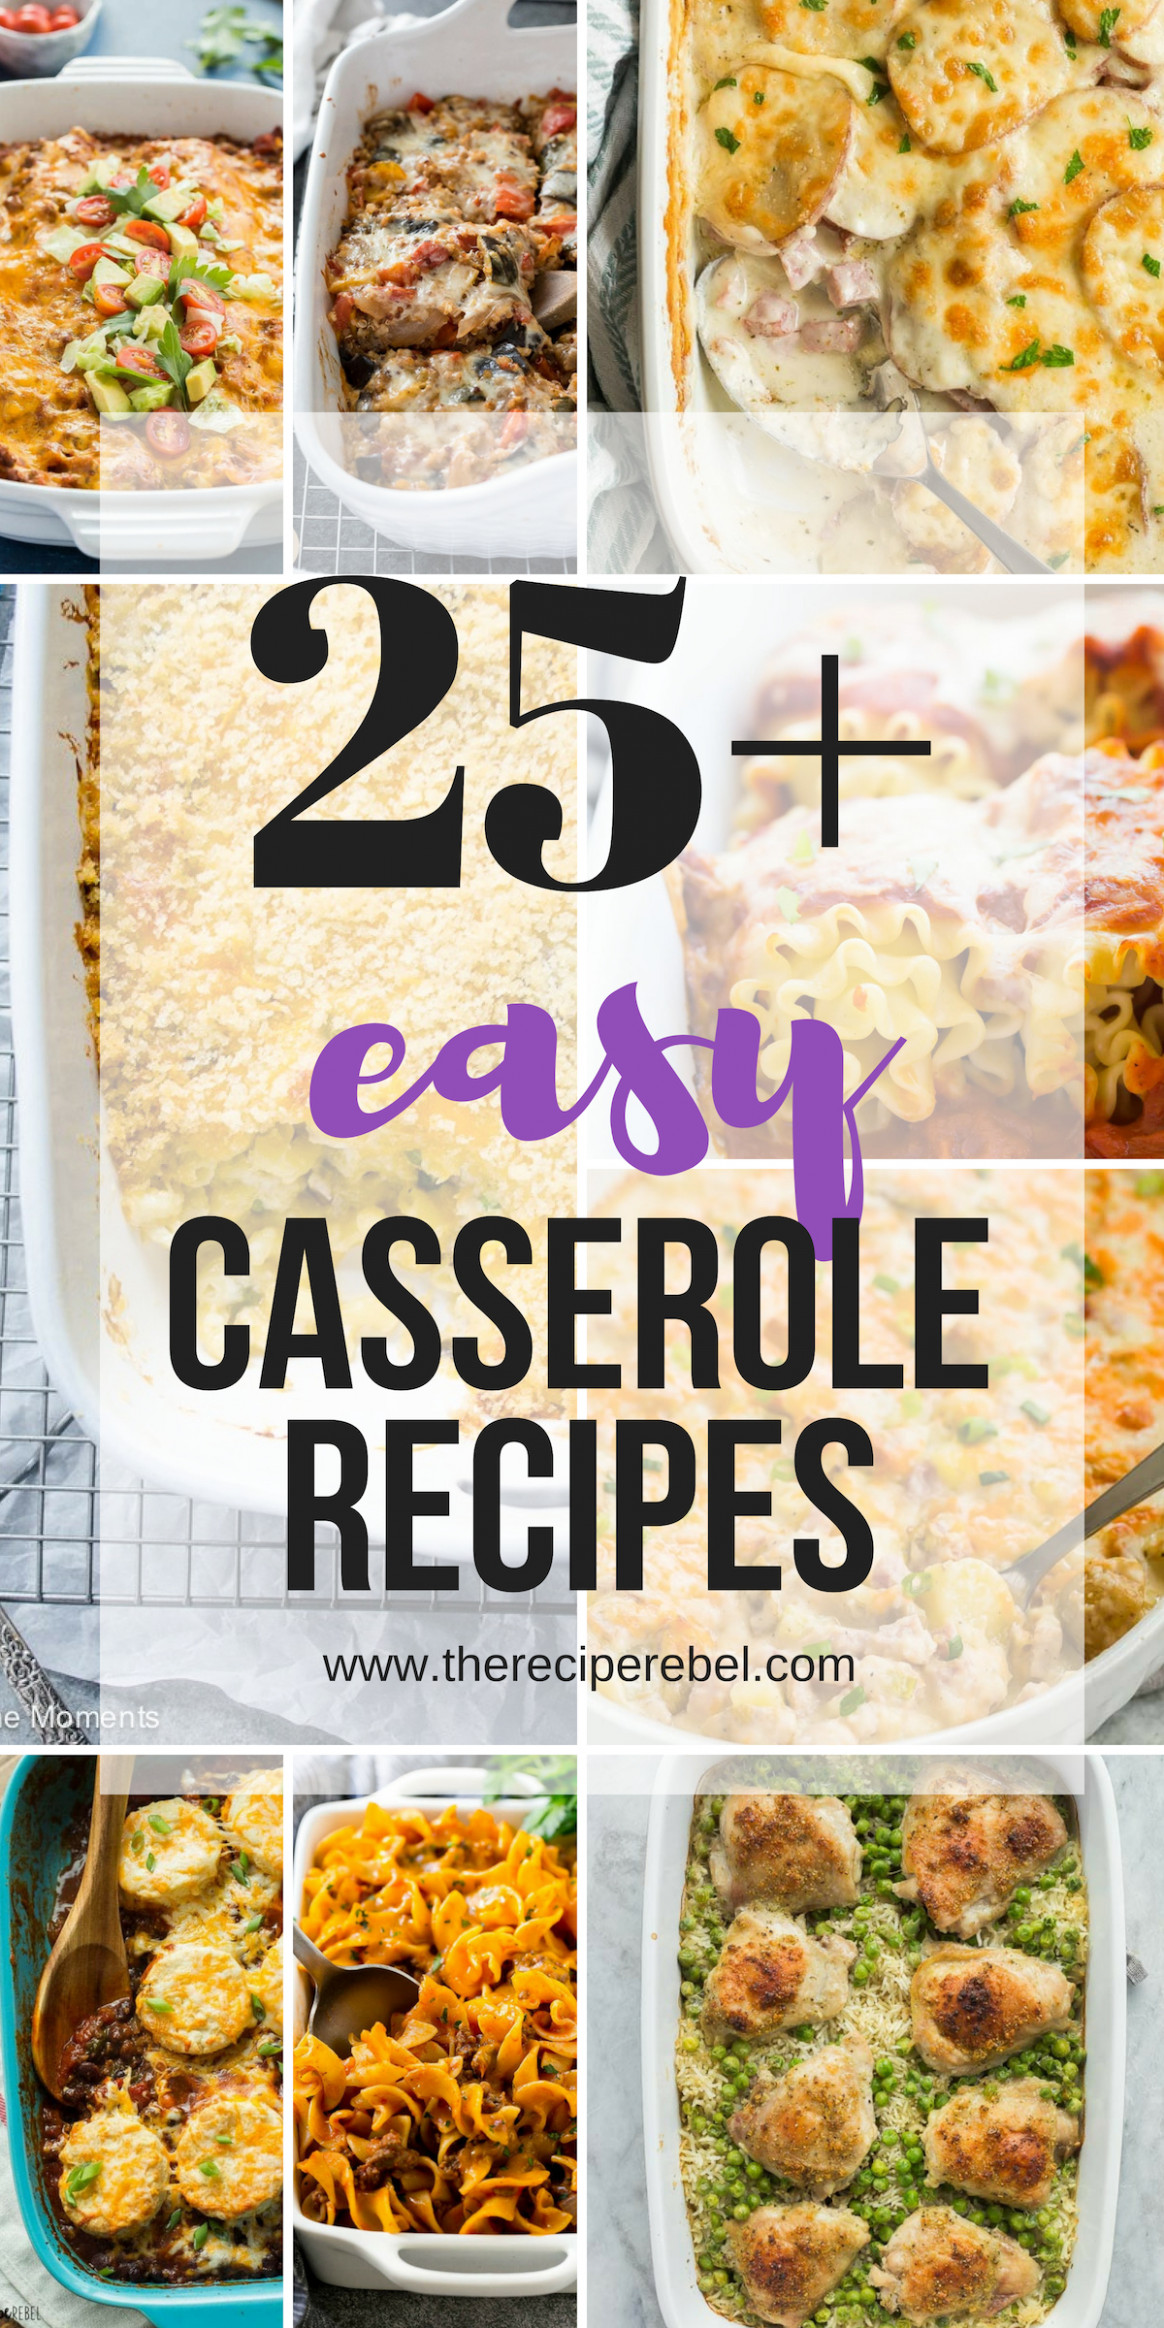 11+ Easy Casserole Recipes - make ahead friendly! - The ..